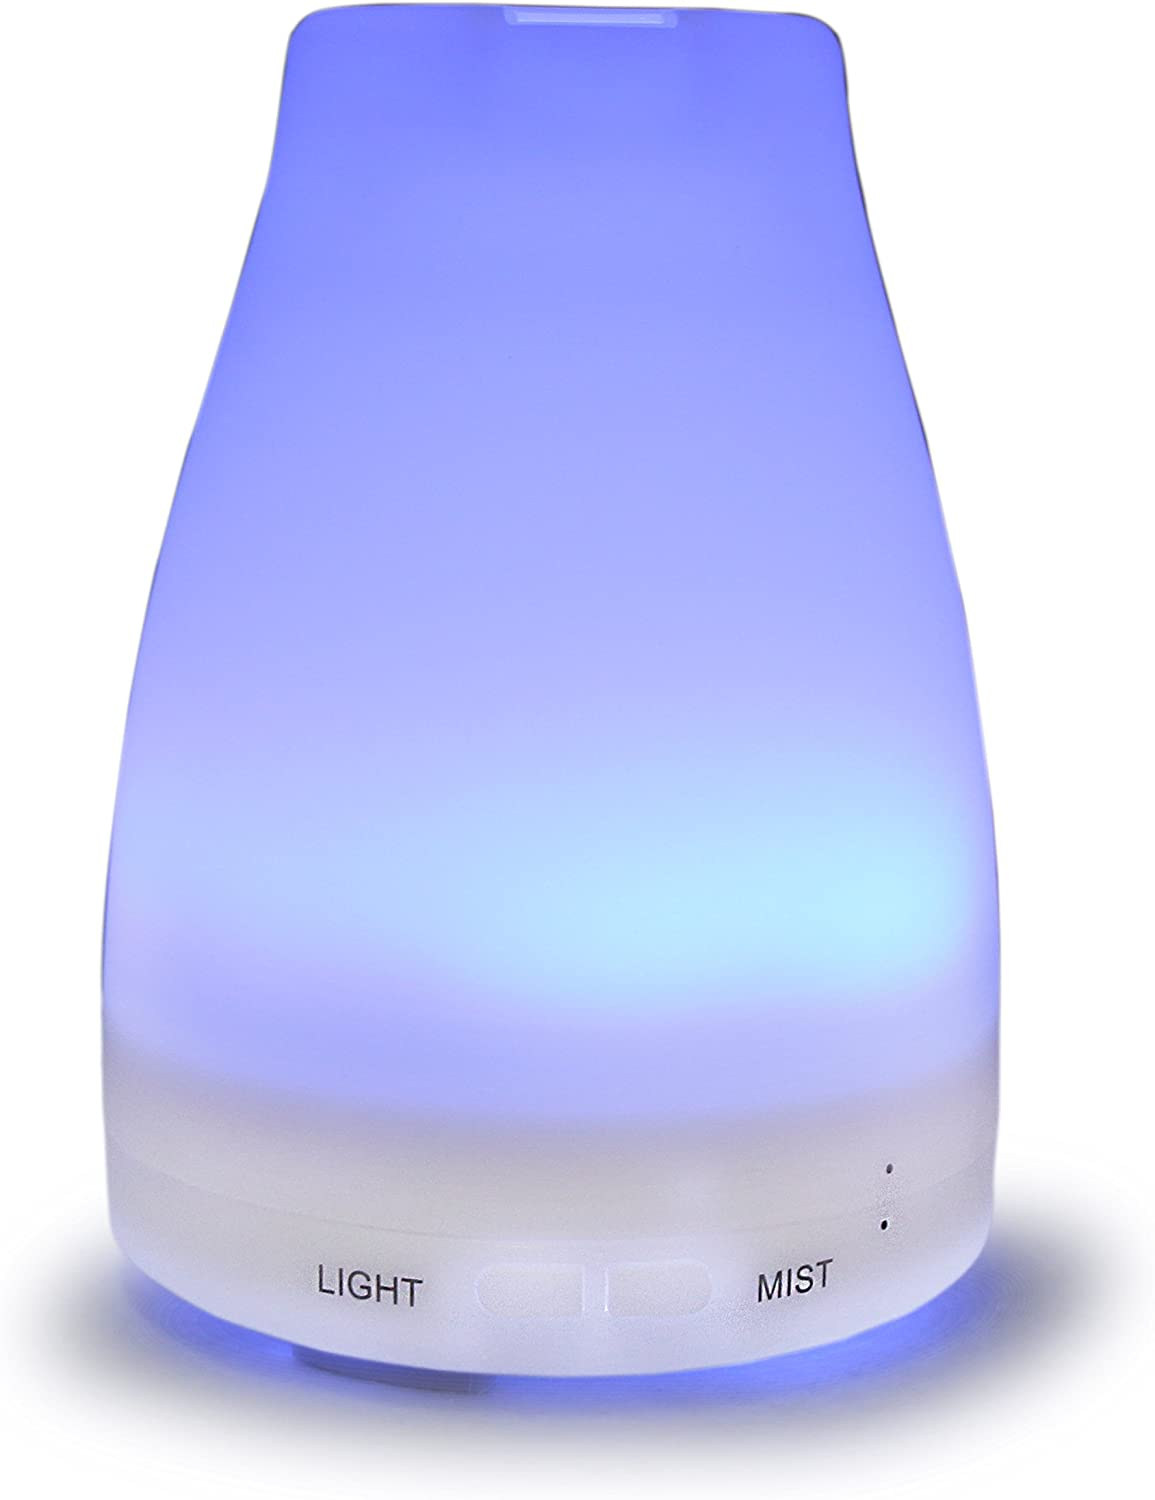 Sungwoo 100ml Aroma Essential Oil Diffuser Ultrasonic Cool Mist Humidifier with Color LED Light Changing and Adjustable Mist Mode